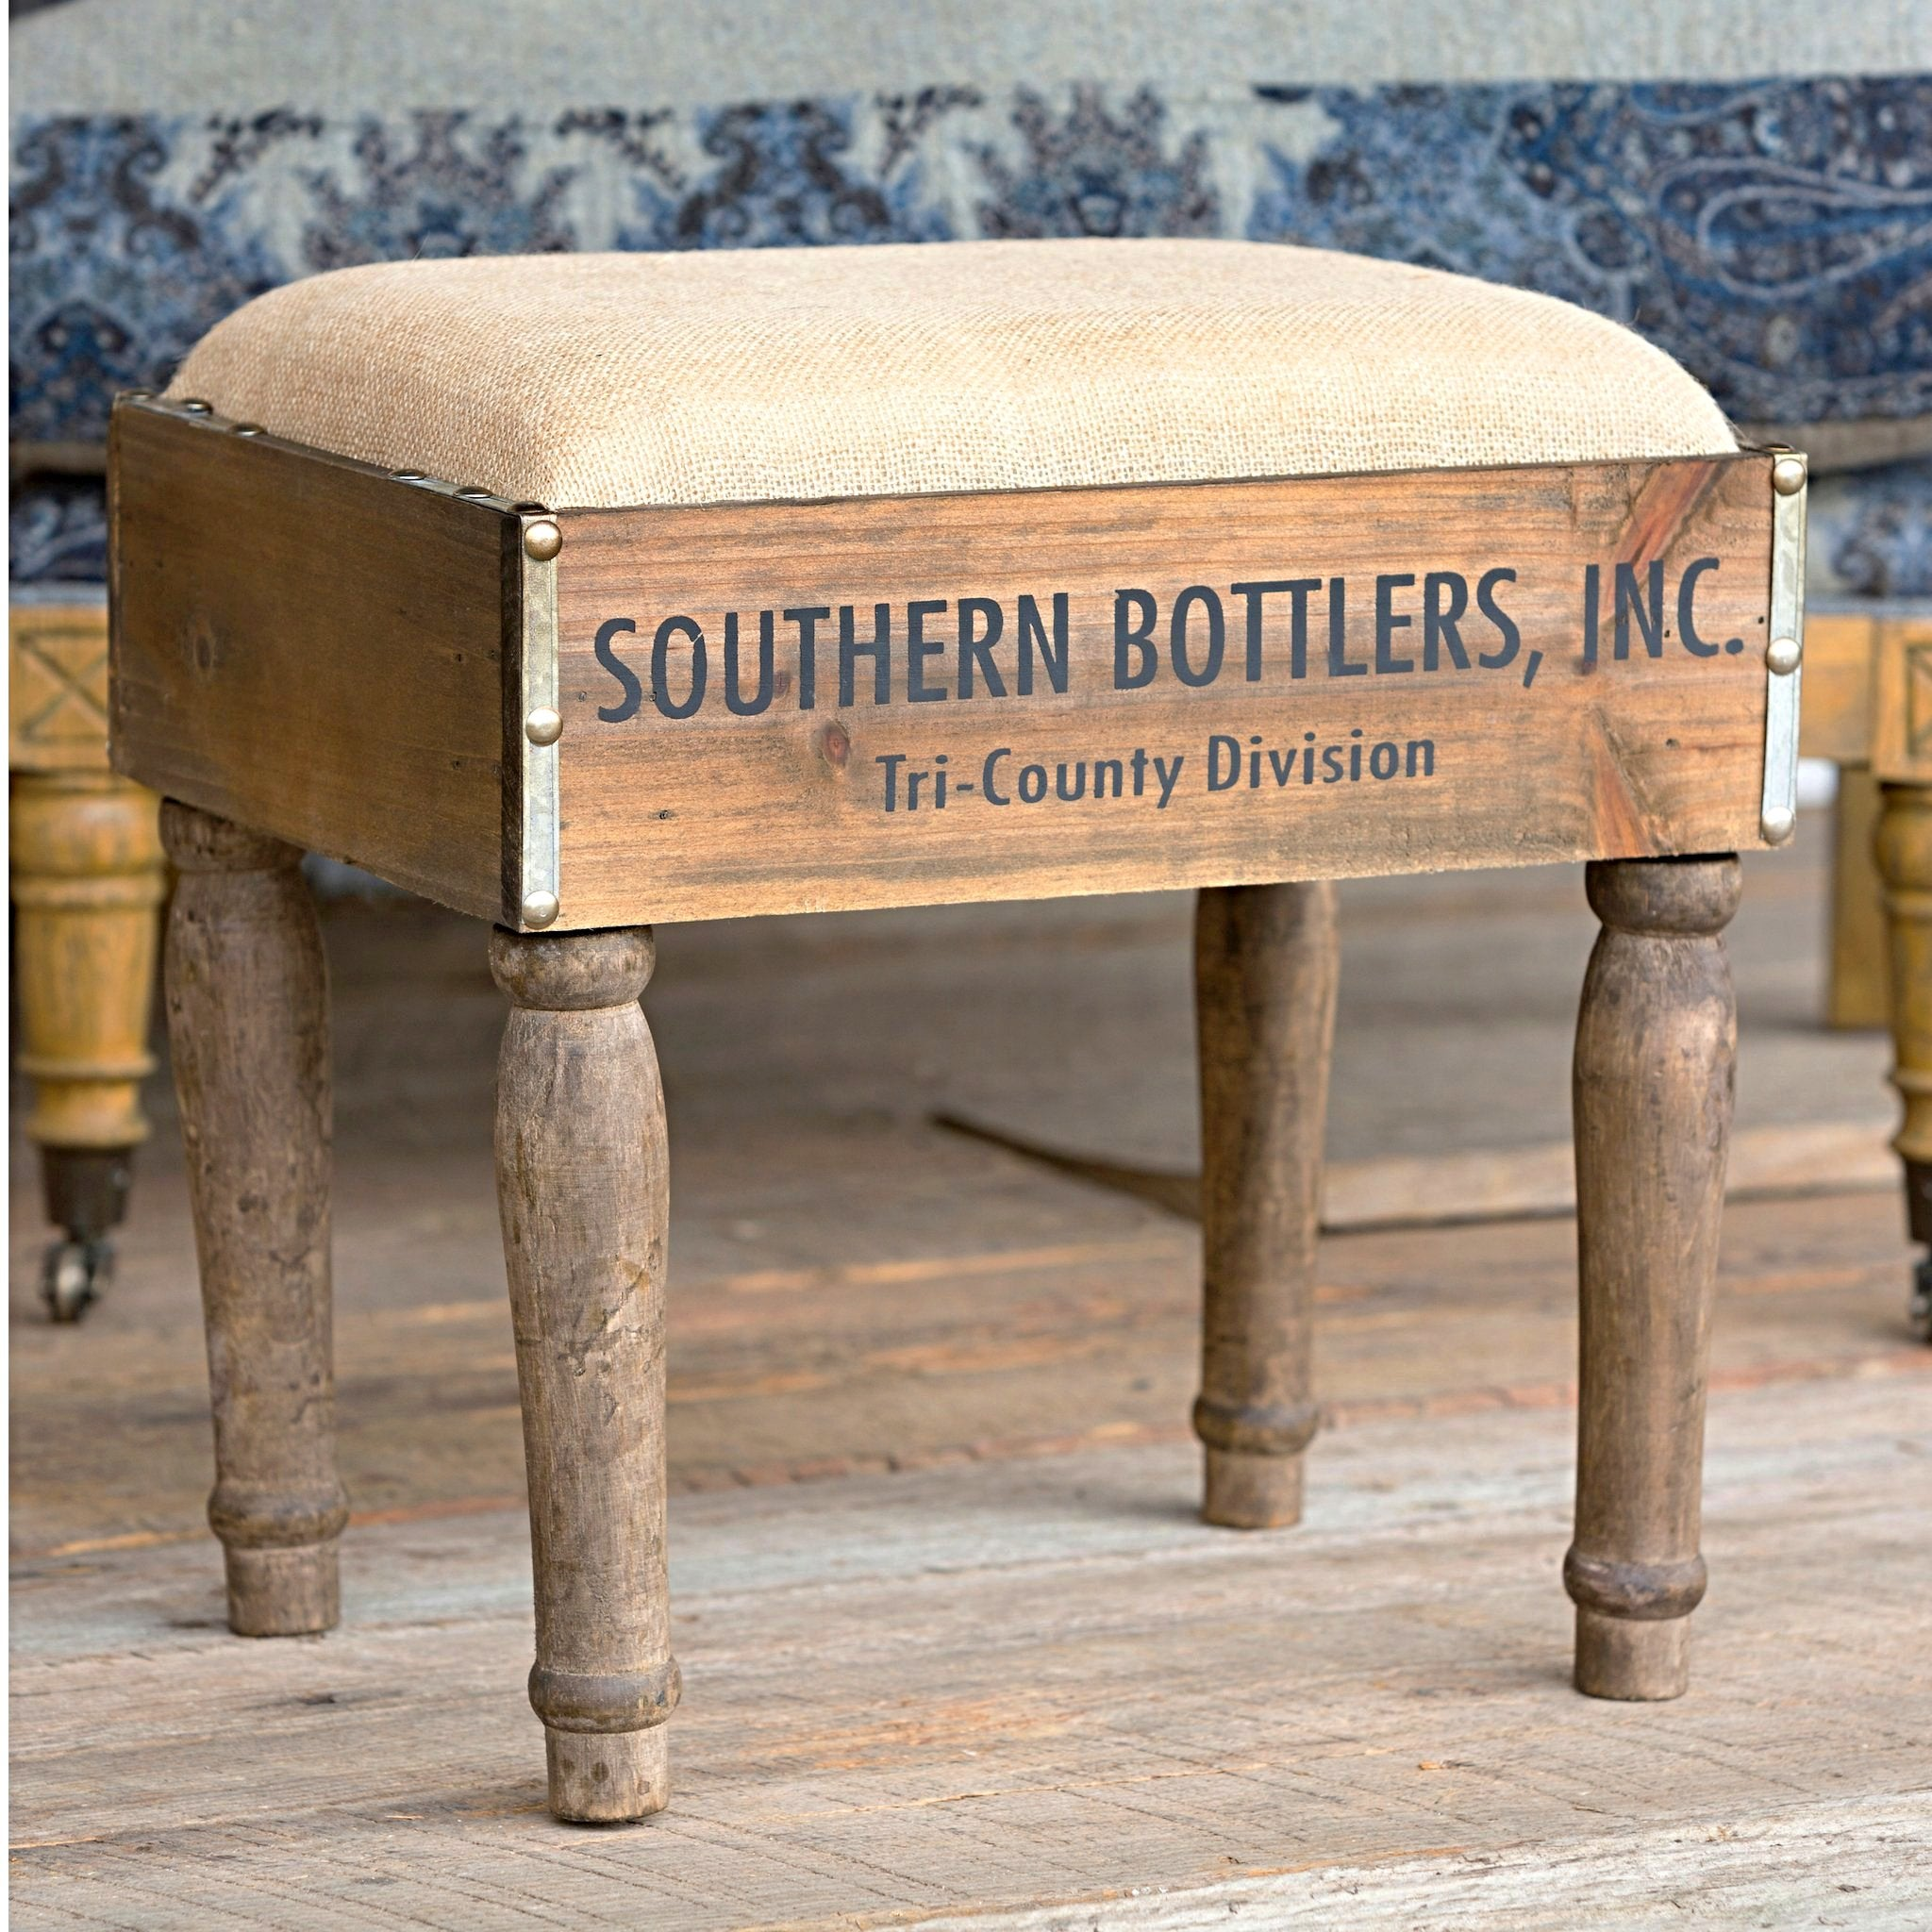 Bottle crate footstool with wood and burlap fabric